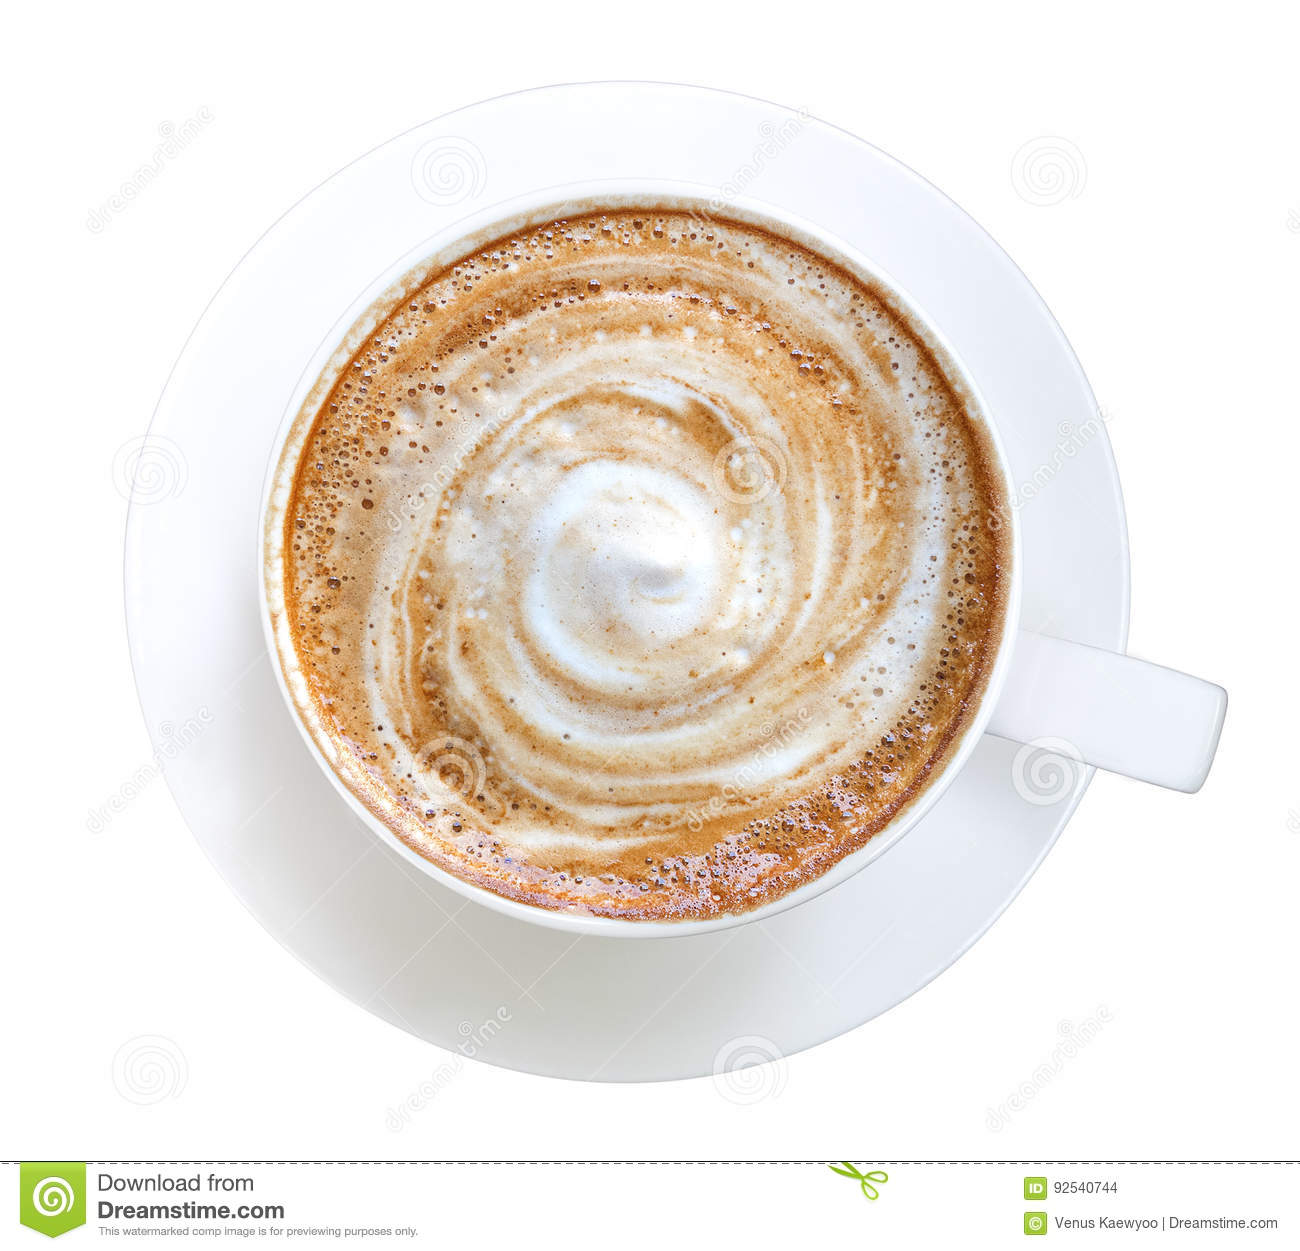 Top view of hot coffee latte cappuccino spiral foam isolated on white background, path